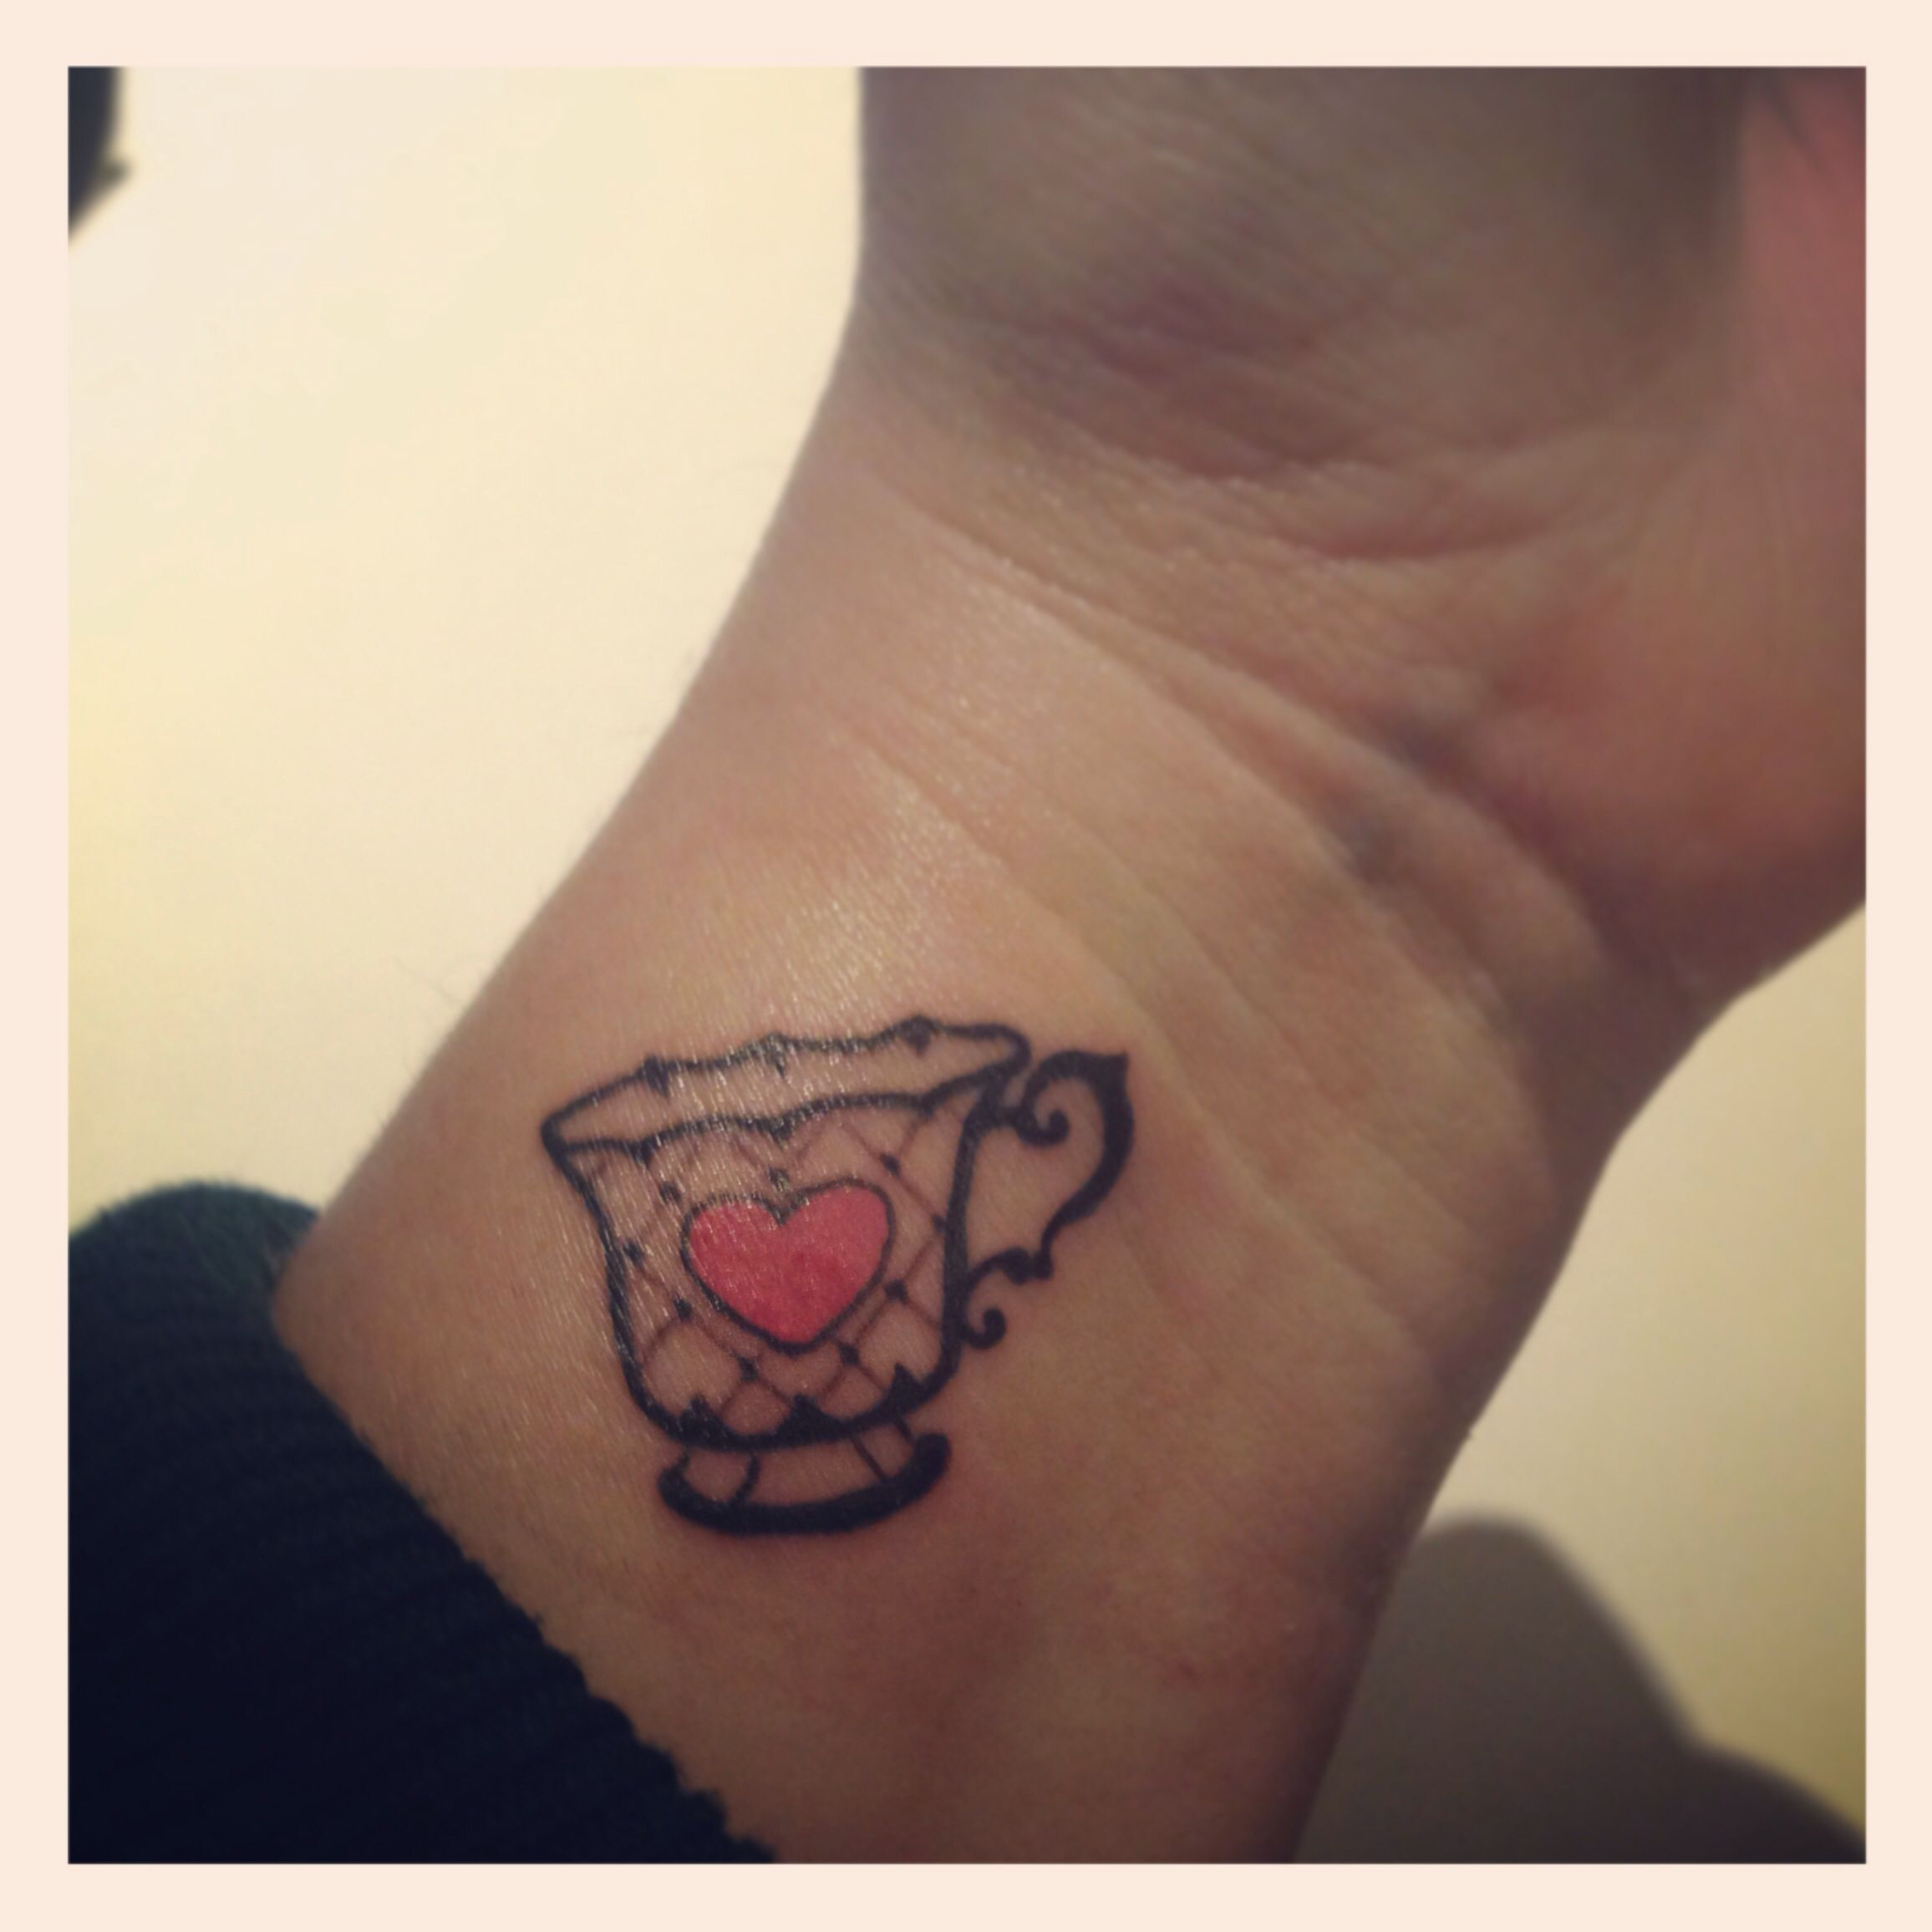 Loving My New Teacup Tattoo In Memory Of My Mum